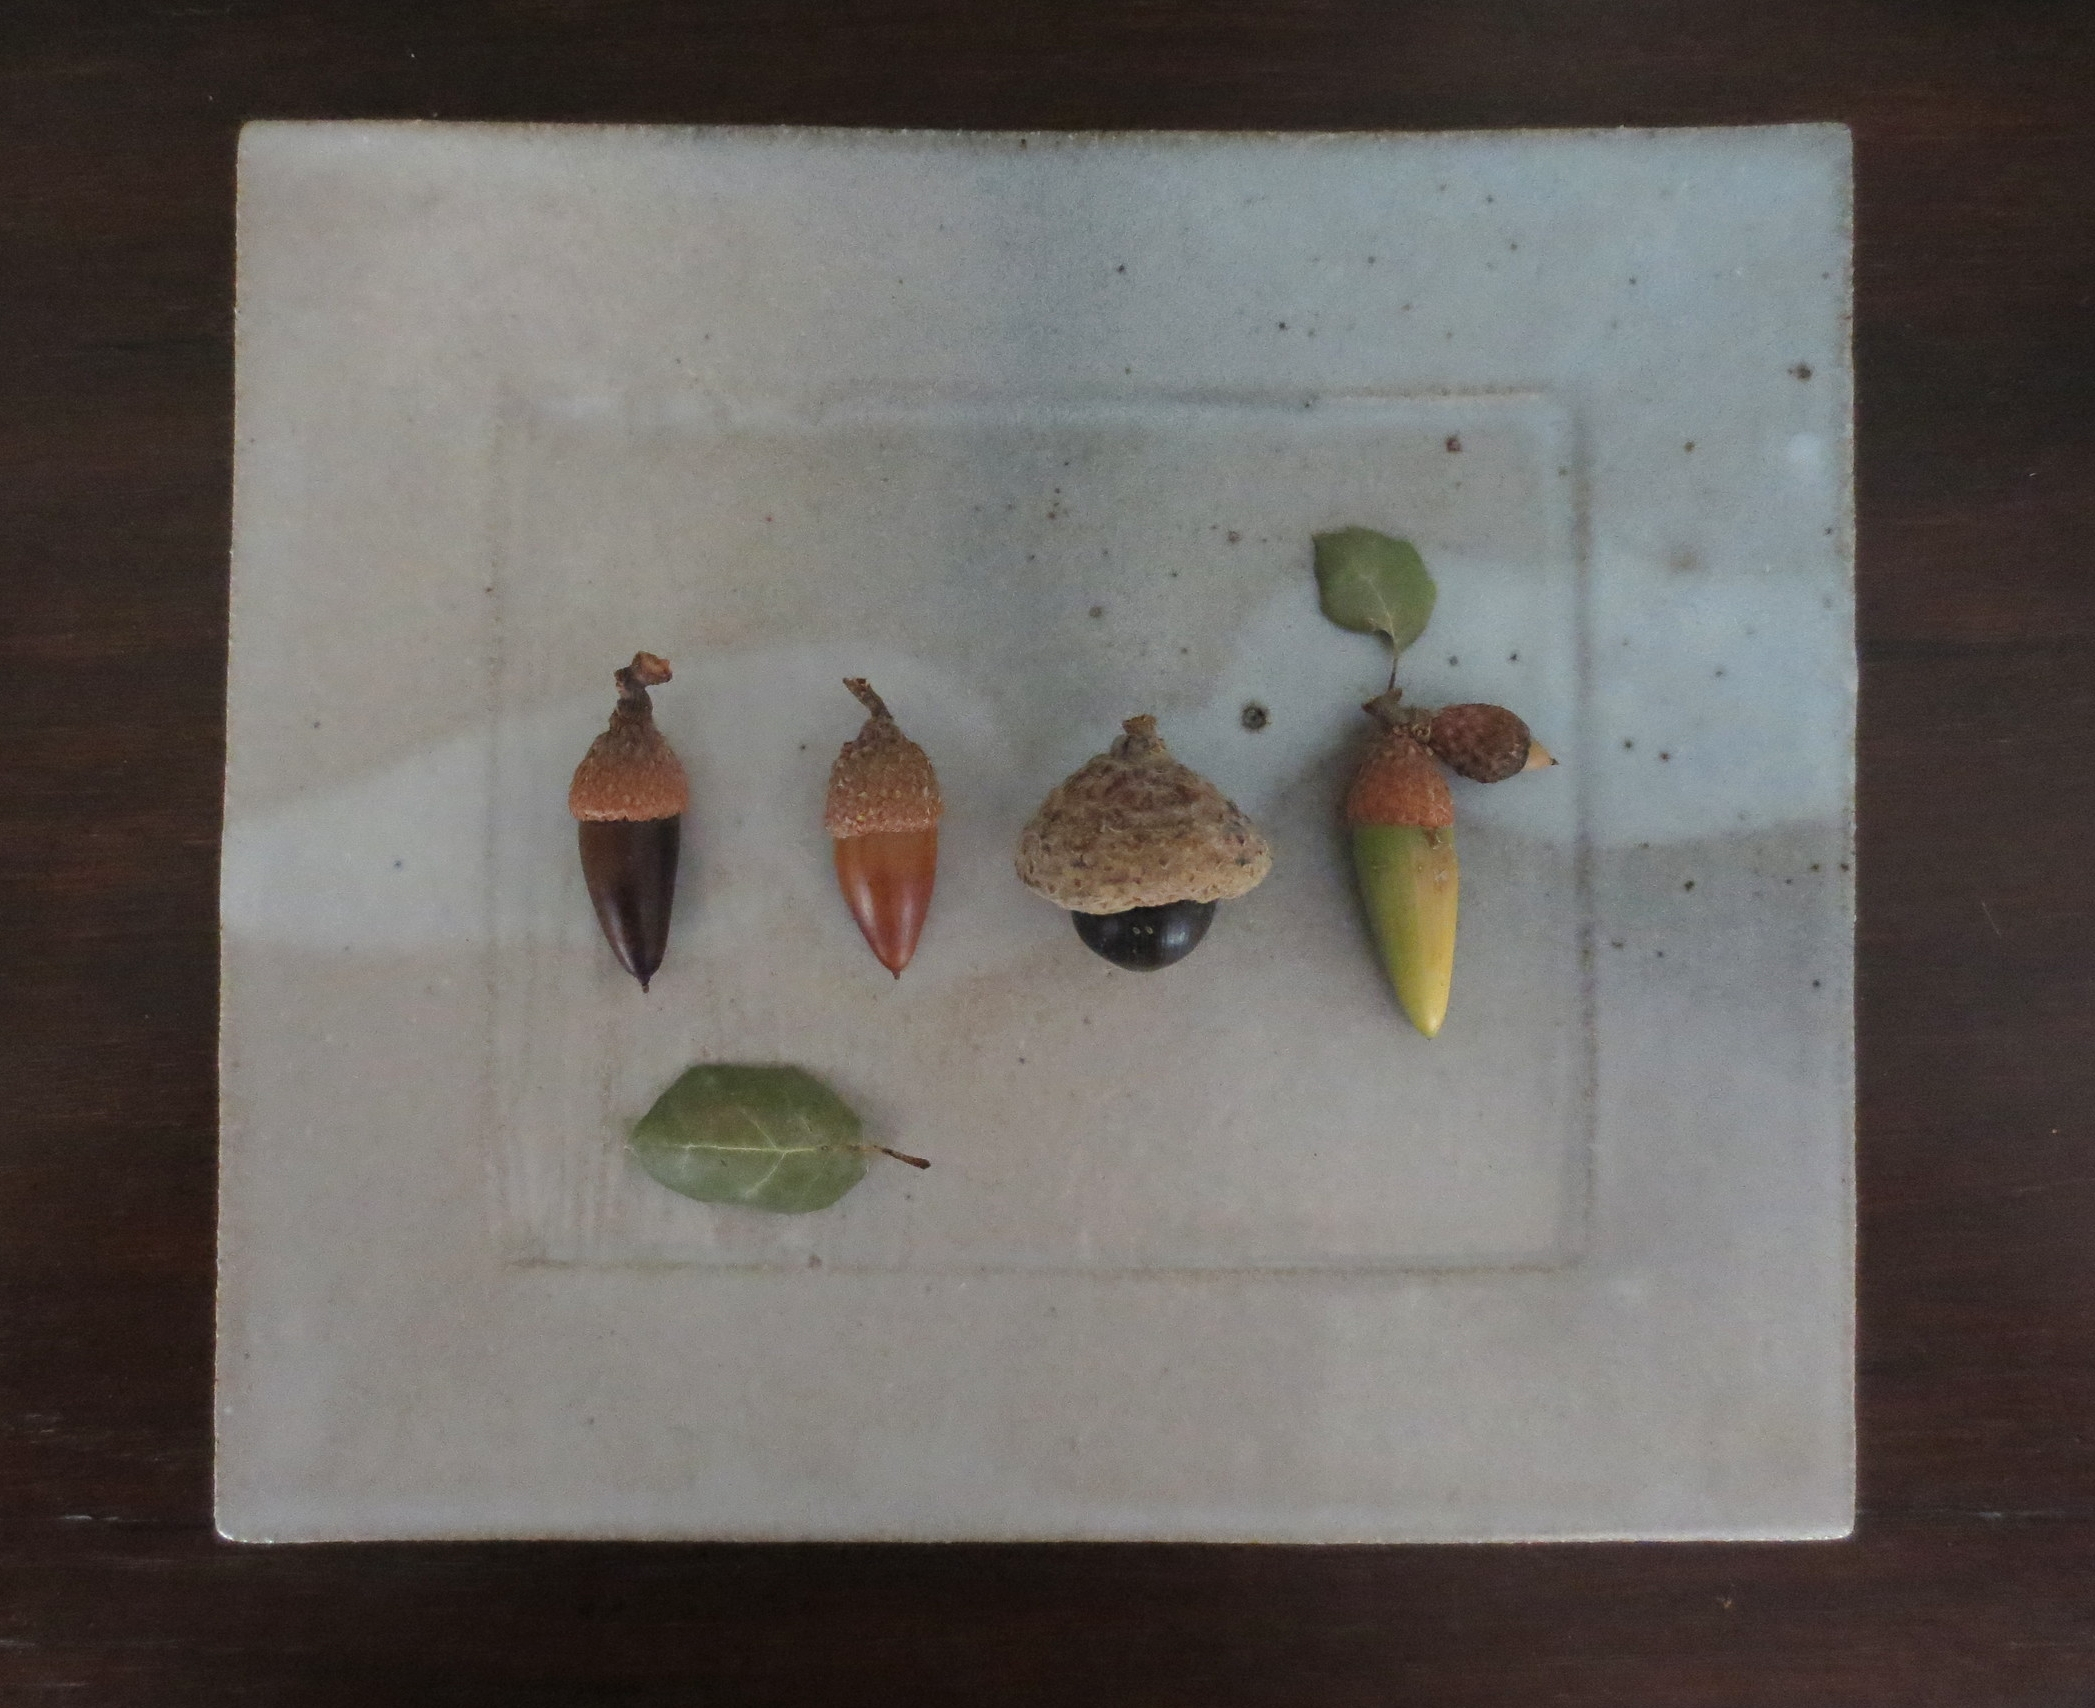 Acorns and leaves on a platter made by my son.